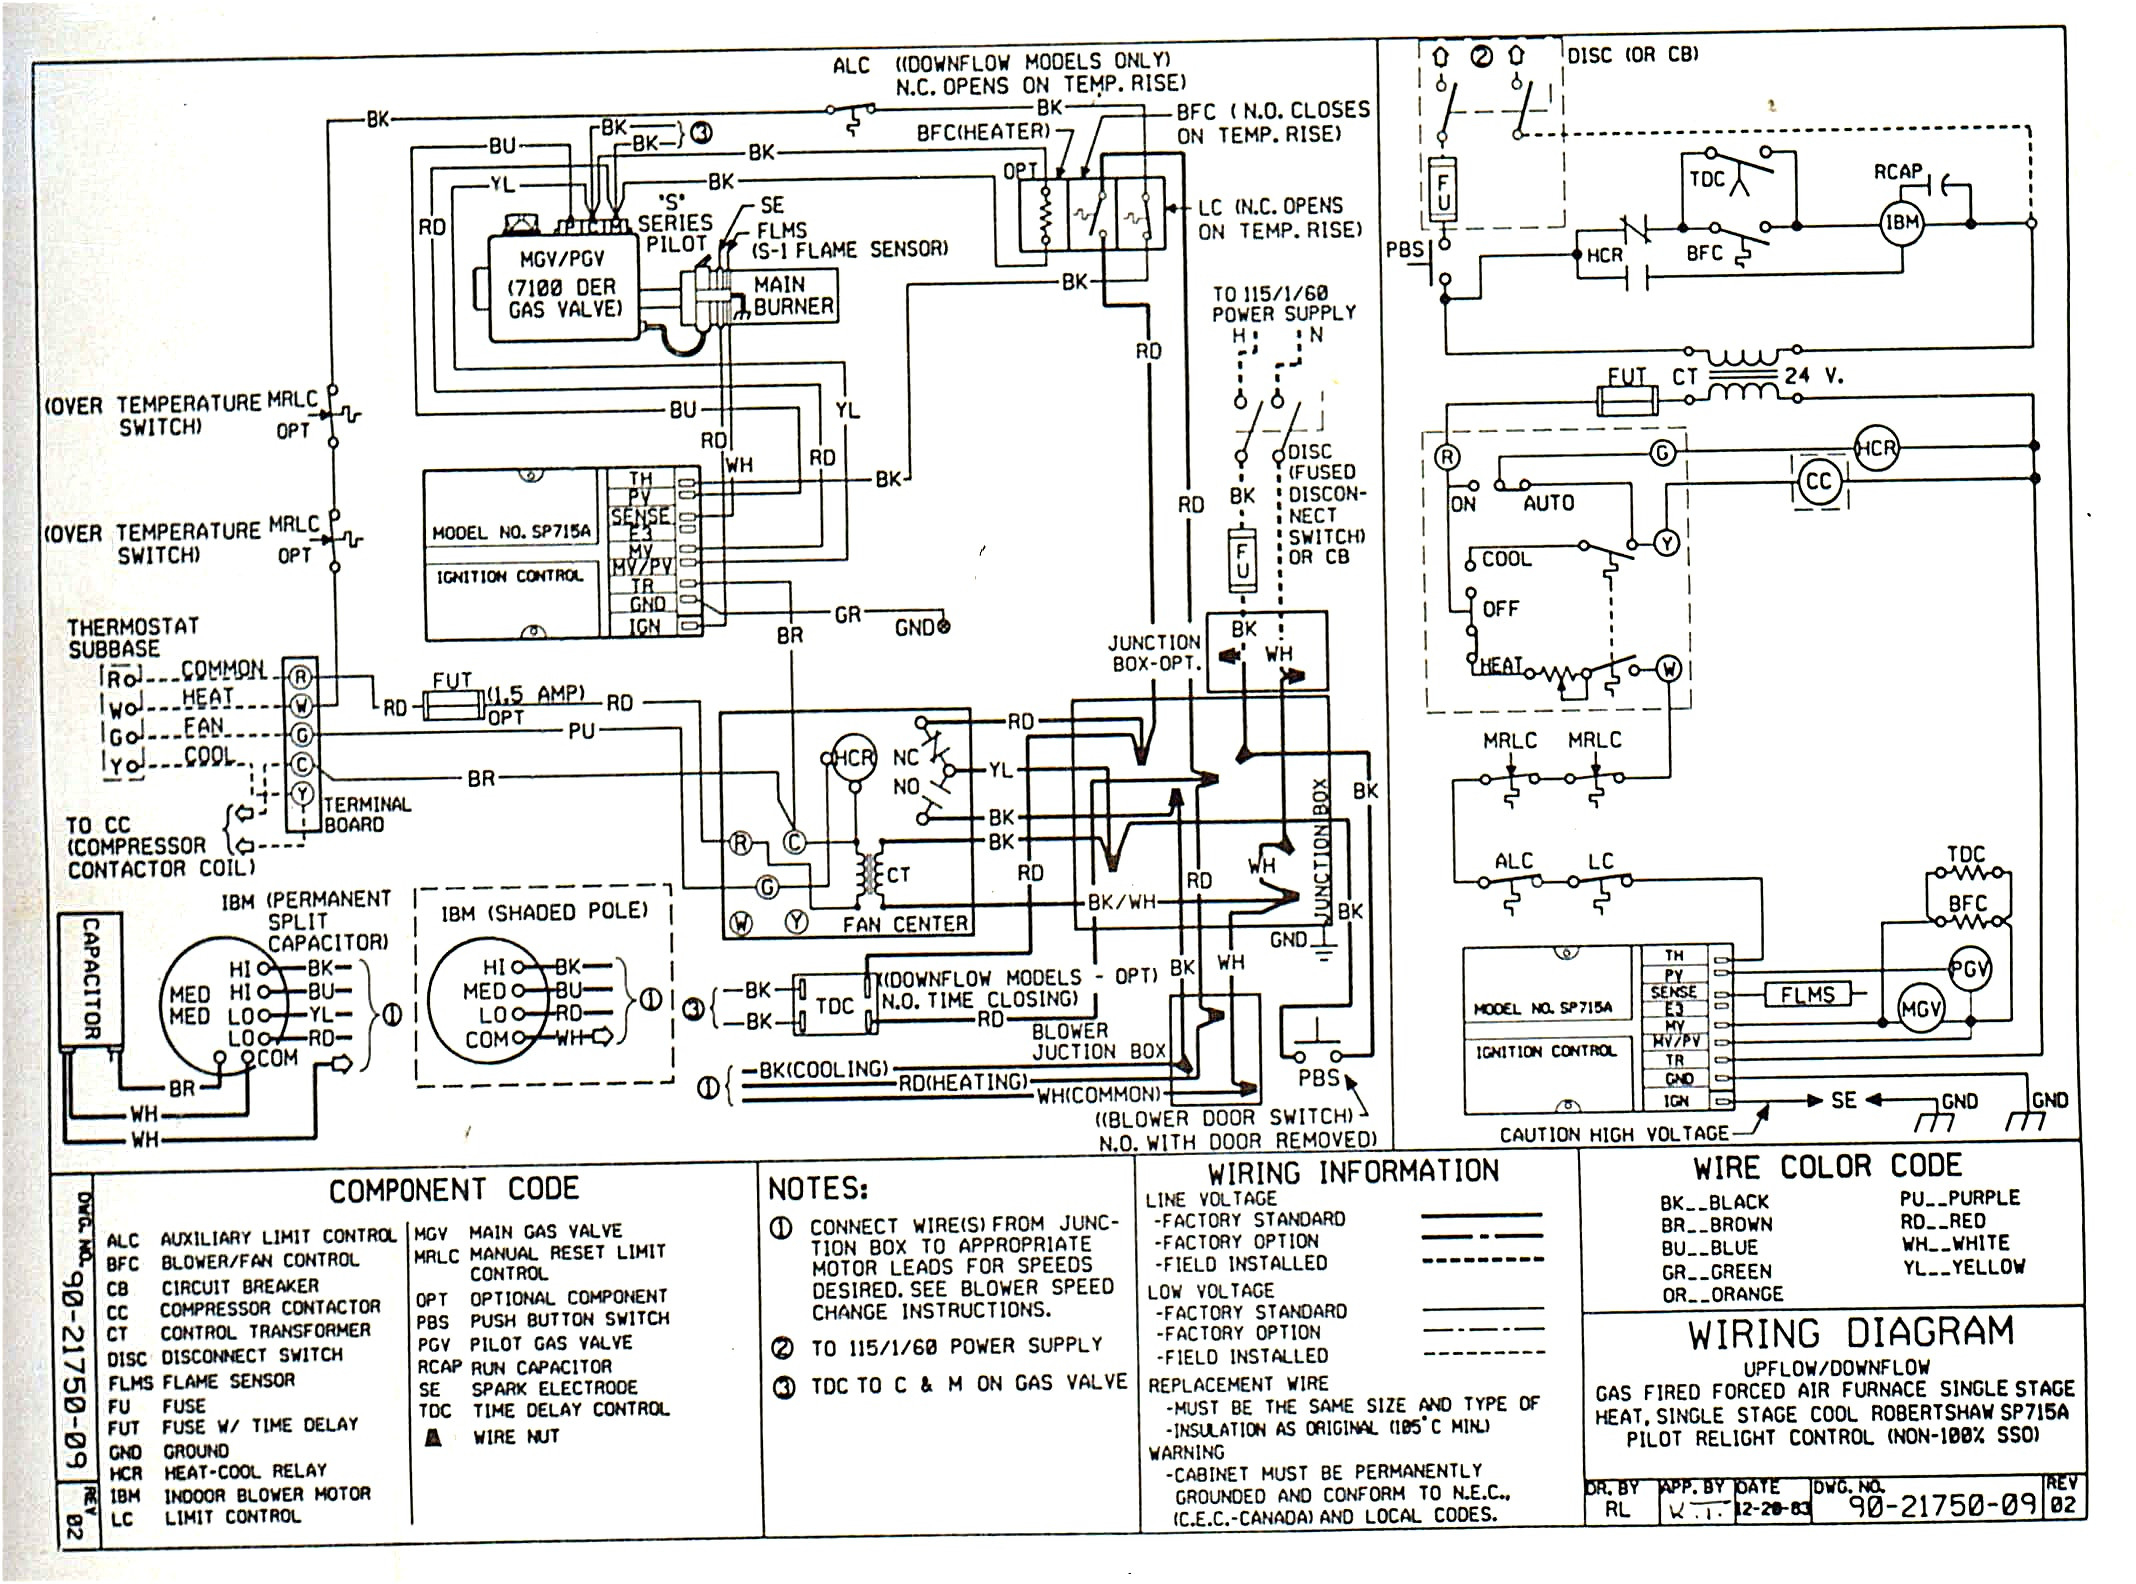 small resolution of vermeer wiring diagram auto electrical wiring diagram icm7216c28pindip controlcircuit circuit diagram seekiccom